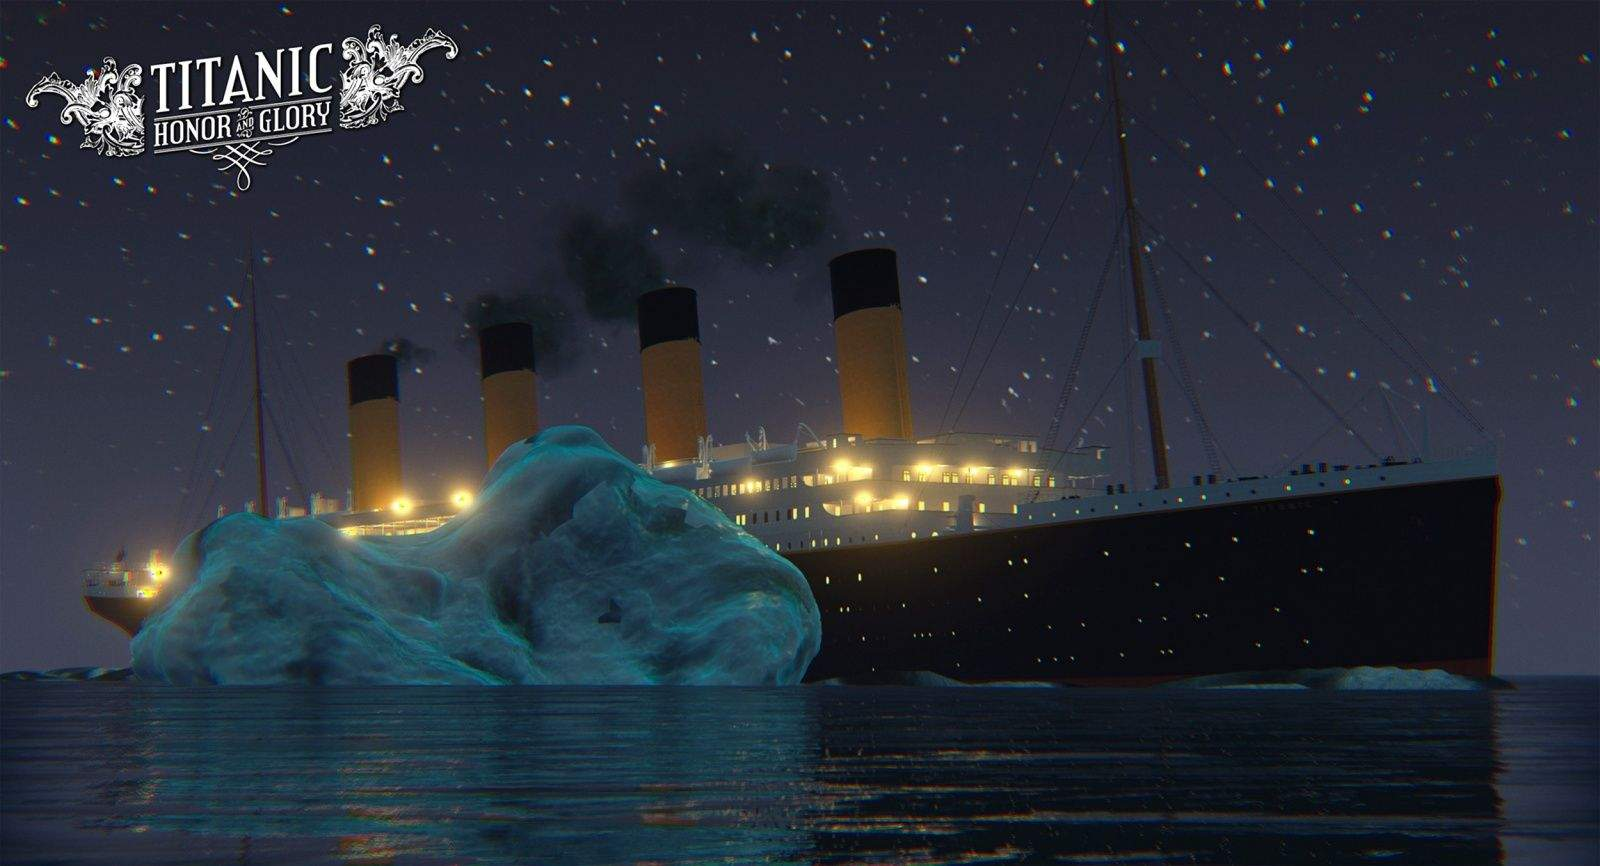 Titanic Ship 3d Wallpaper Free Download Go Down With The Ship Titanic Game Goes Deep On History